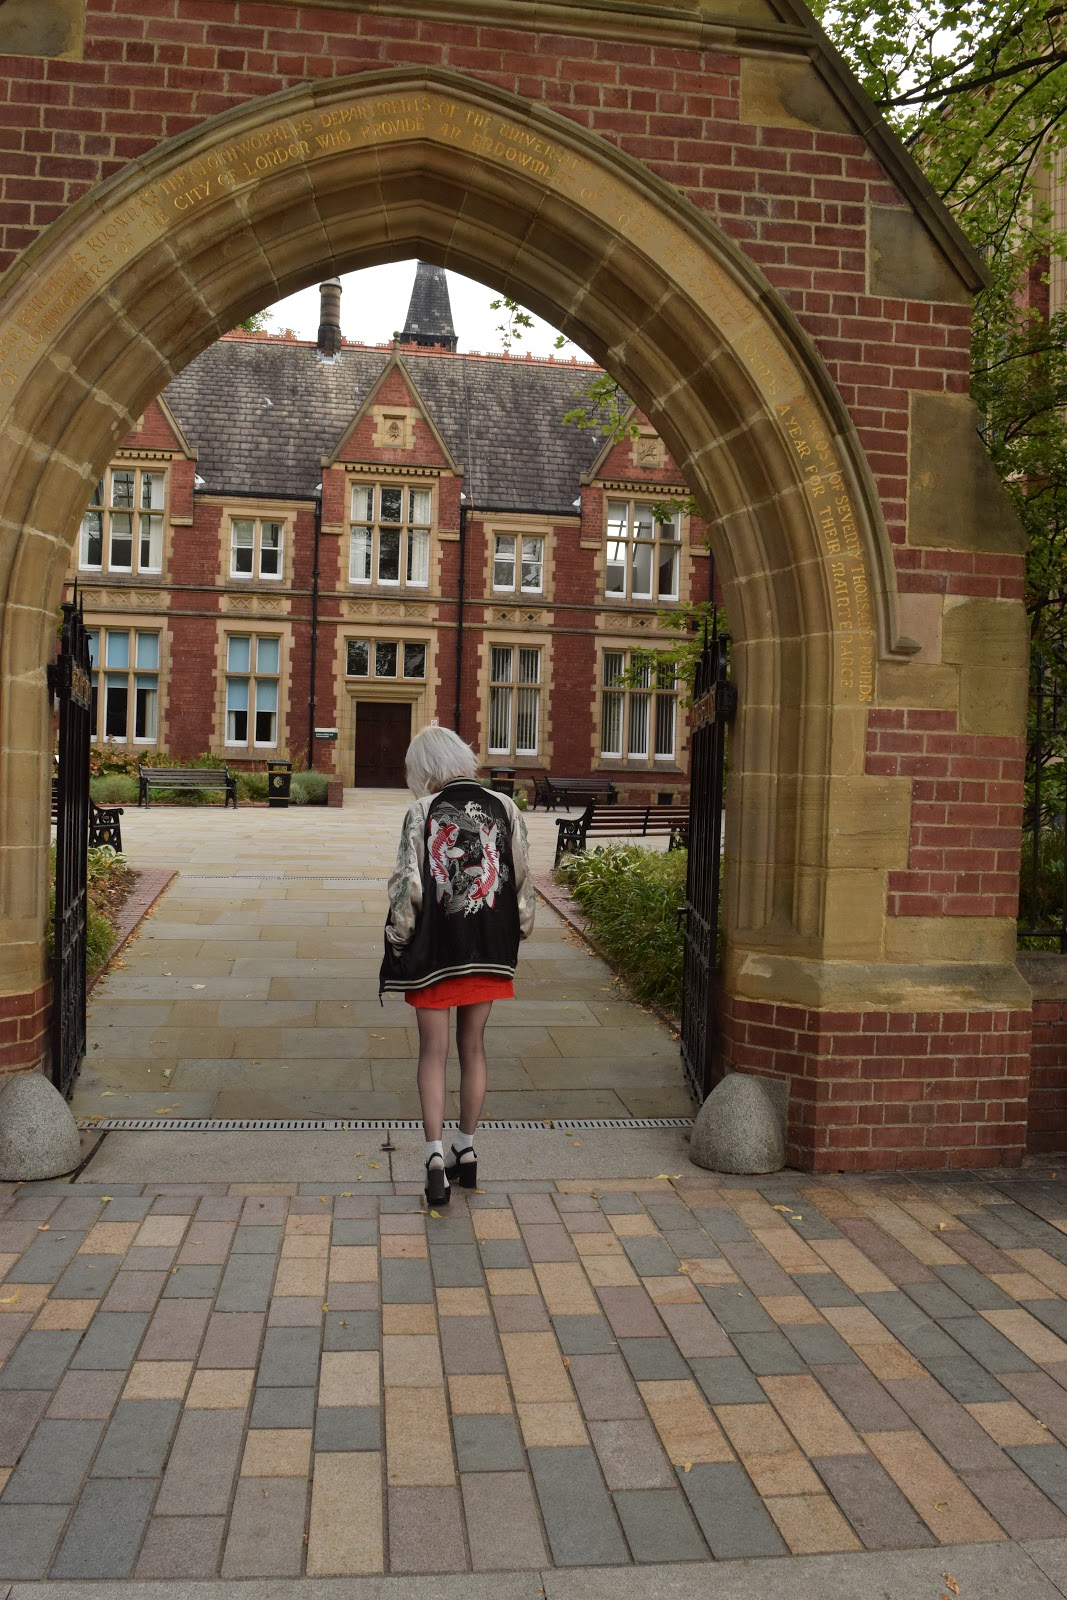 silver haired girl in red dress, heels and sukajan standing in an archway at the University of Leeds